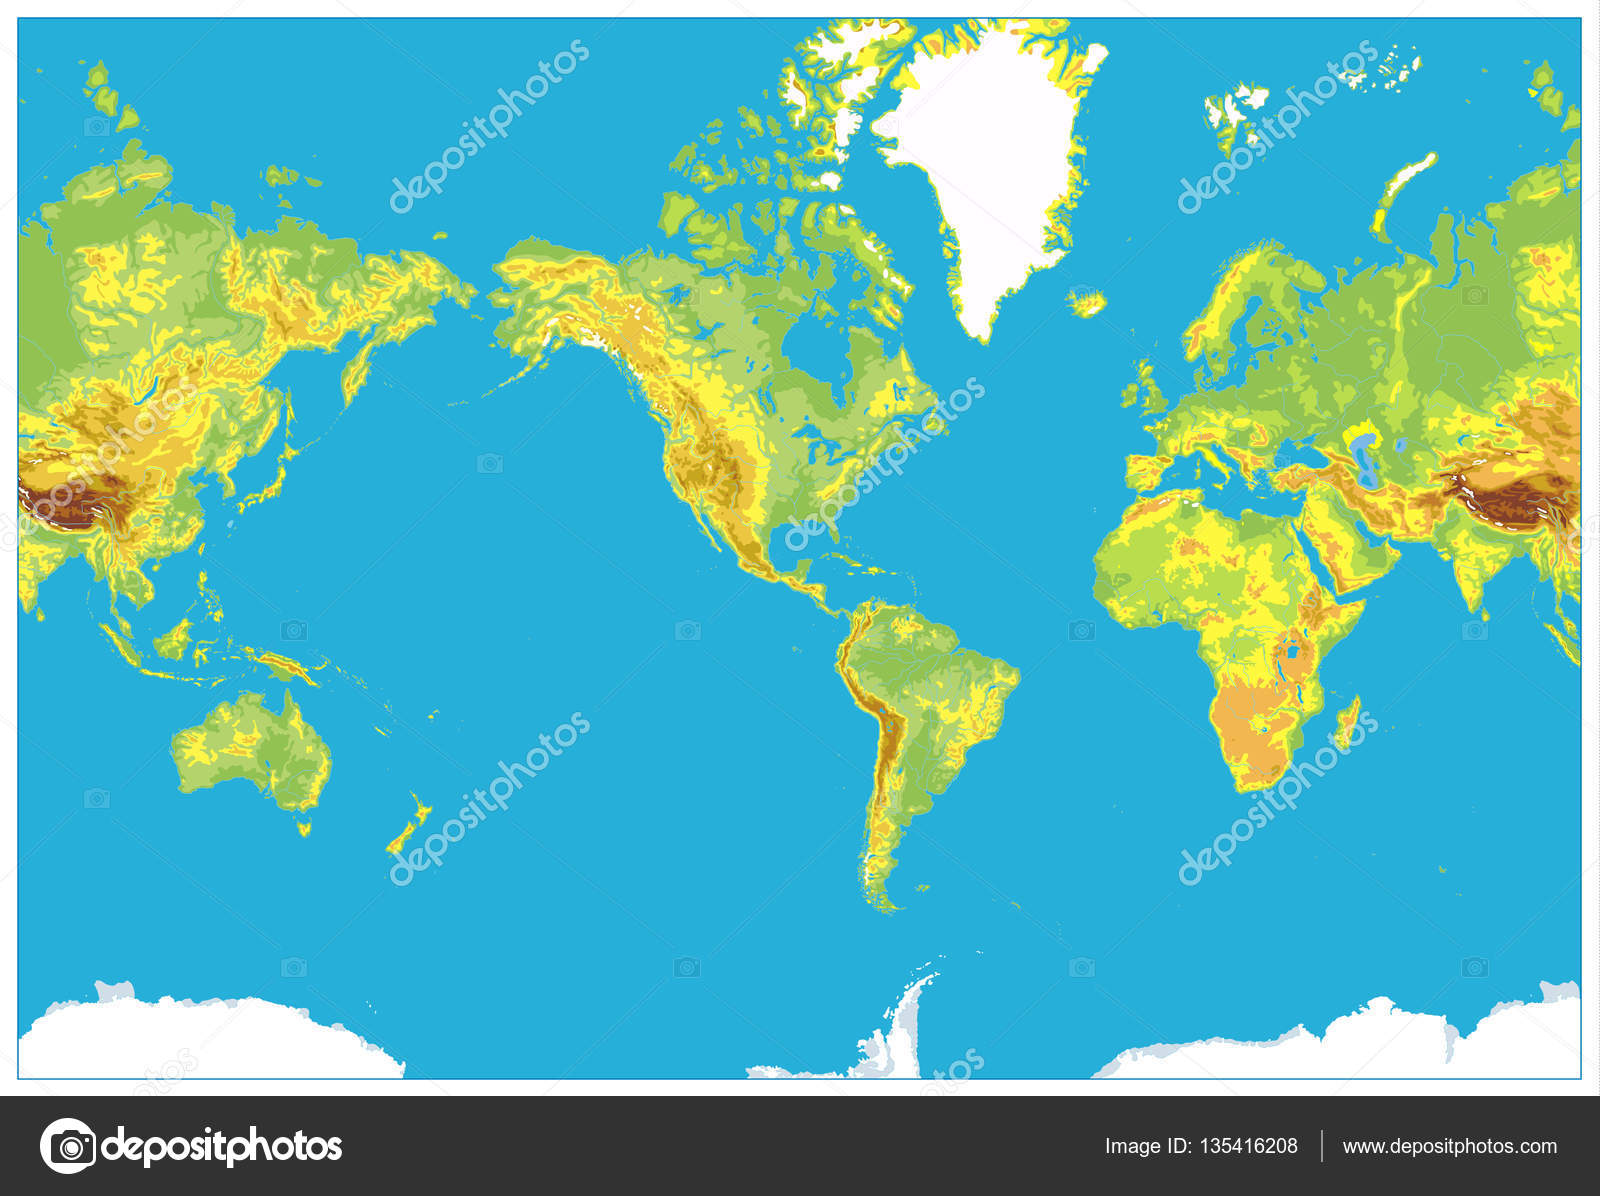 America centered detailed physical world map stock vector america centered detailed physical world map stock vector gumiabroncs Image collections